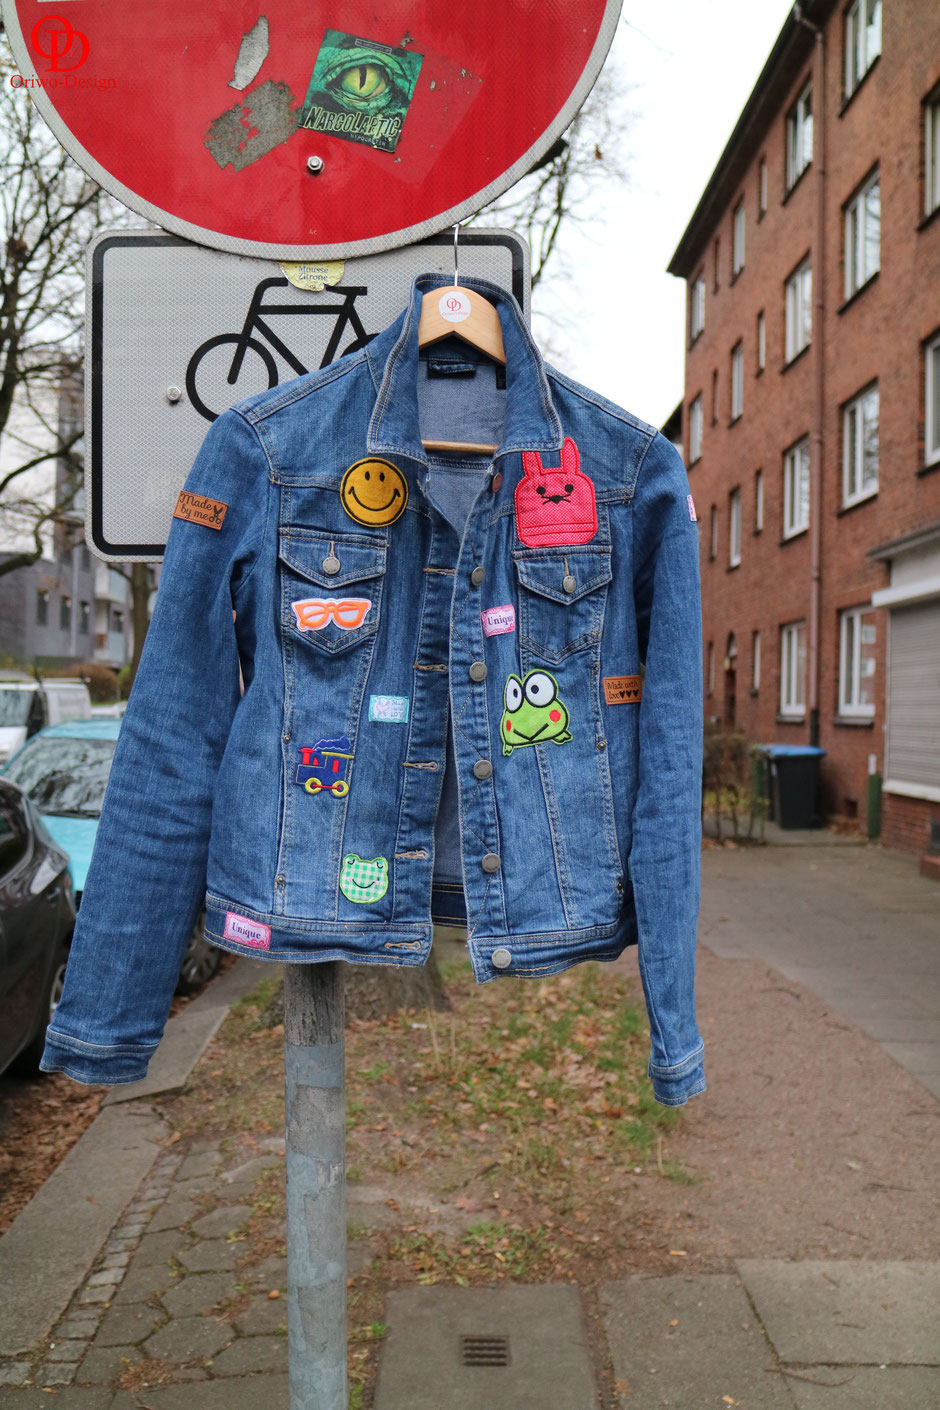 Denim jackets are currently all over runways, Fashion magazines & on social media, but with embellishments such as embroidery & interesting patches.